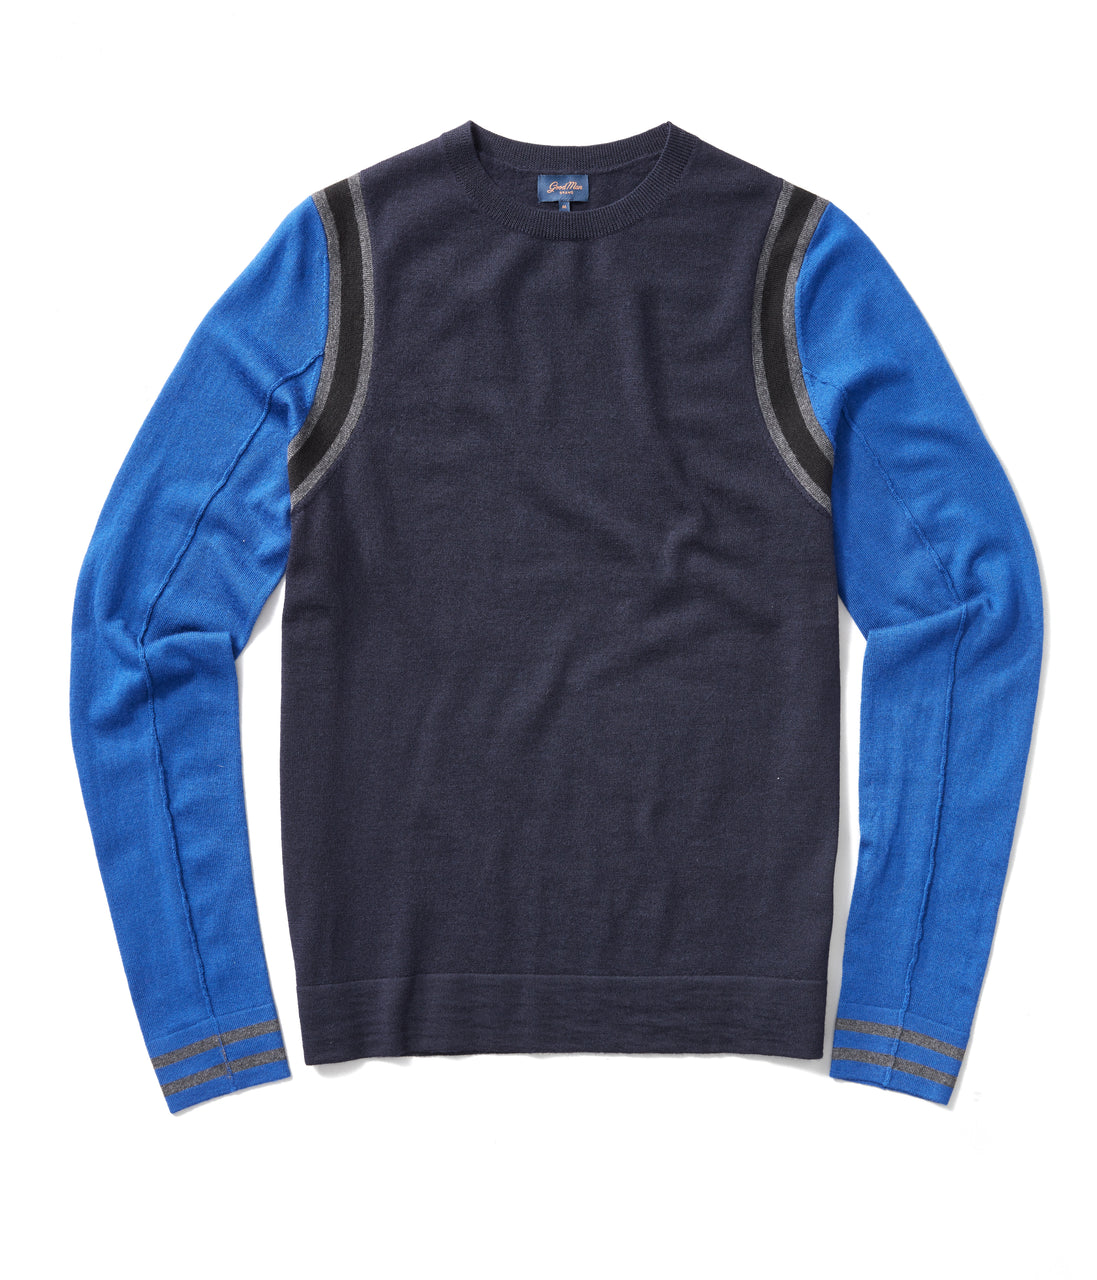 MVP Athletic Color Block Sweater - Blue - Good Man Brand - MVP Athletic Color Block Sweater - Blue